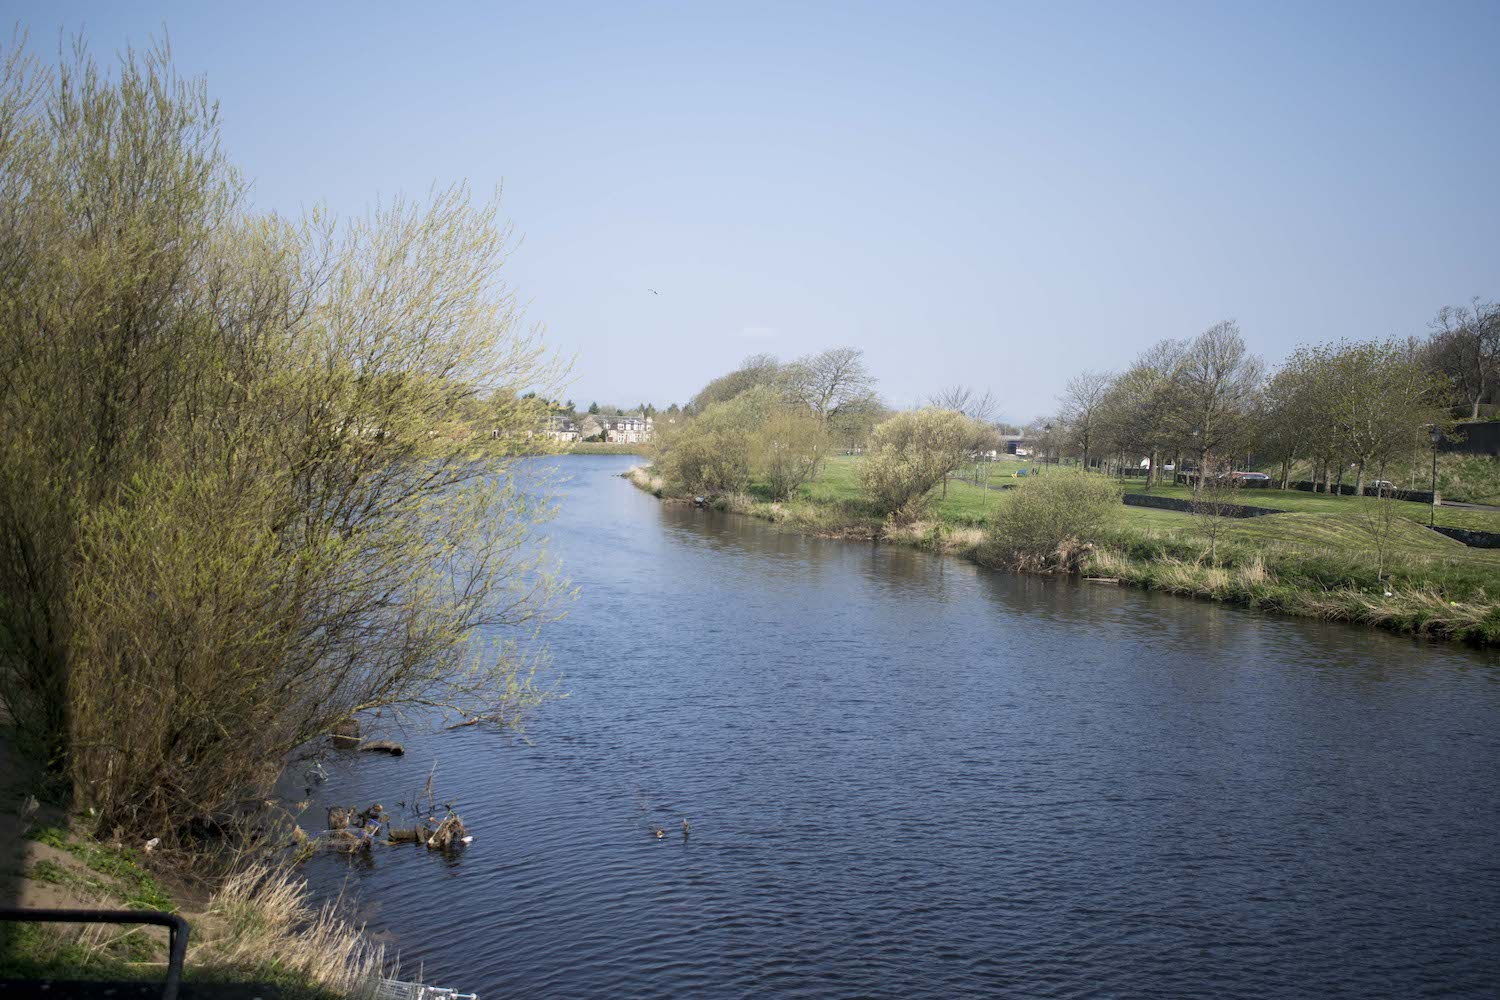 The River Irvine today, where the high tide mark once was. The river has since been widened and dredged.